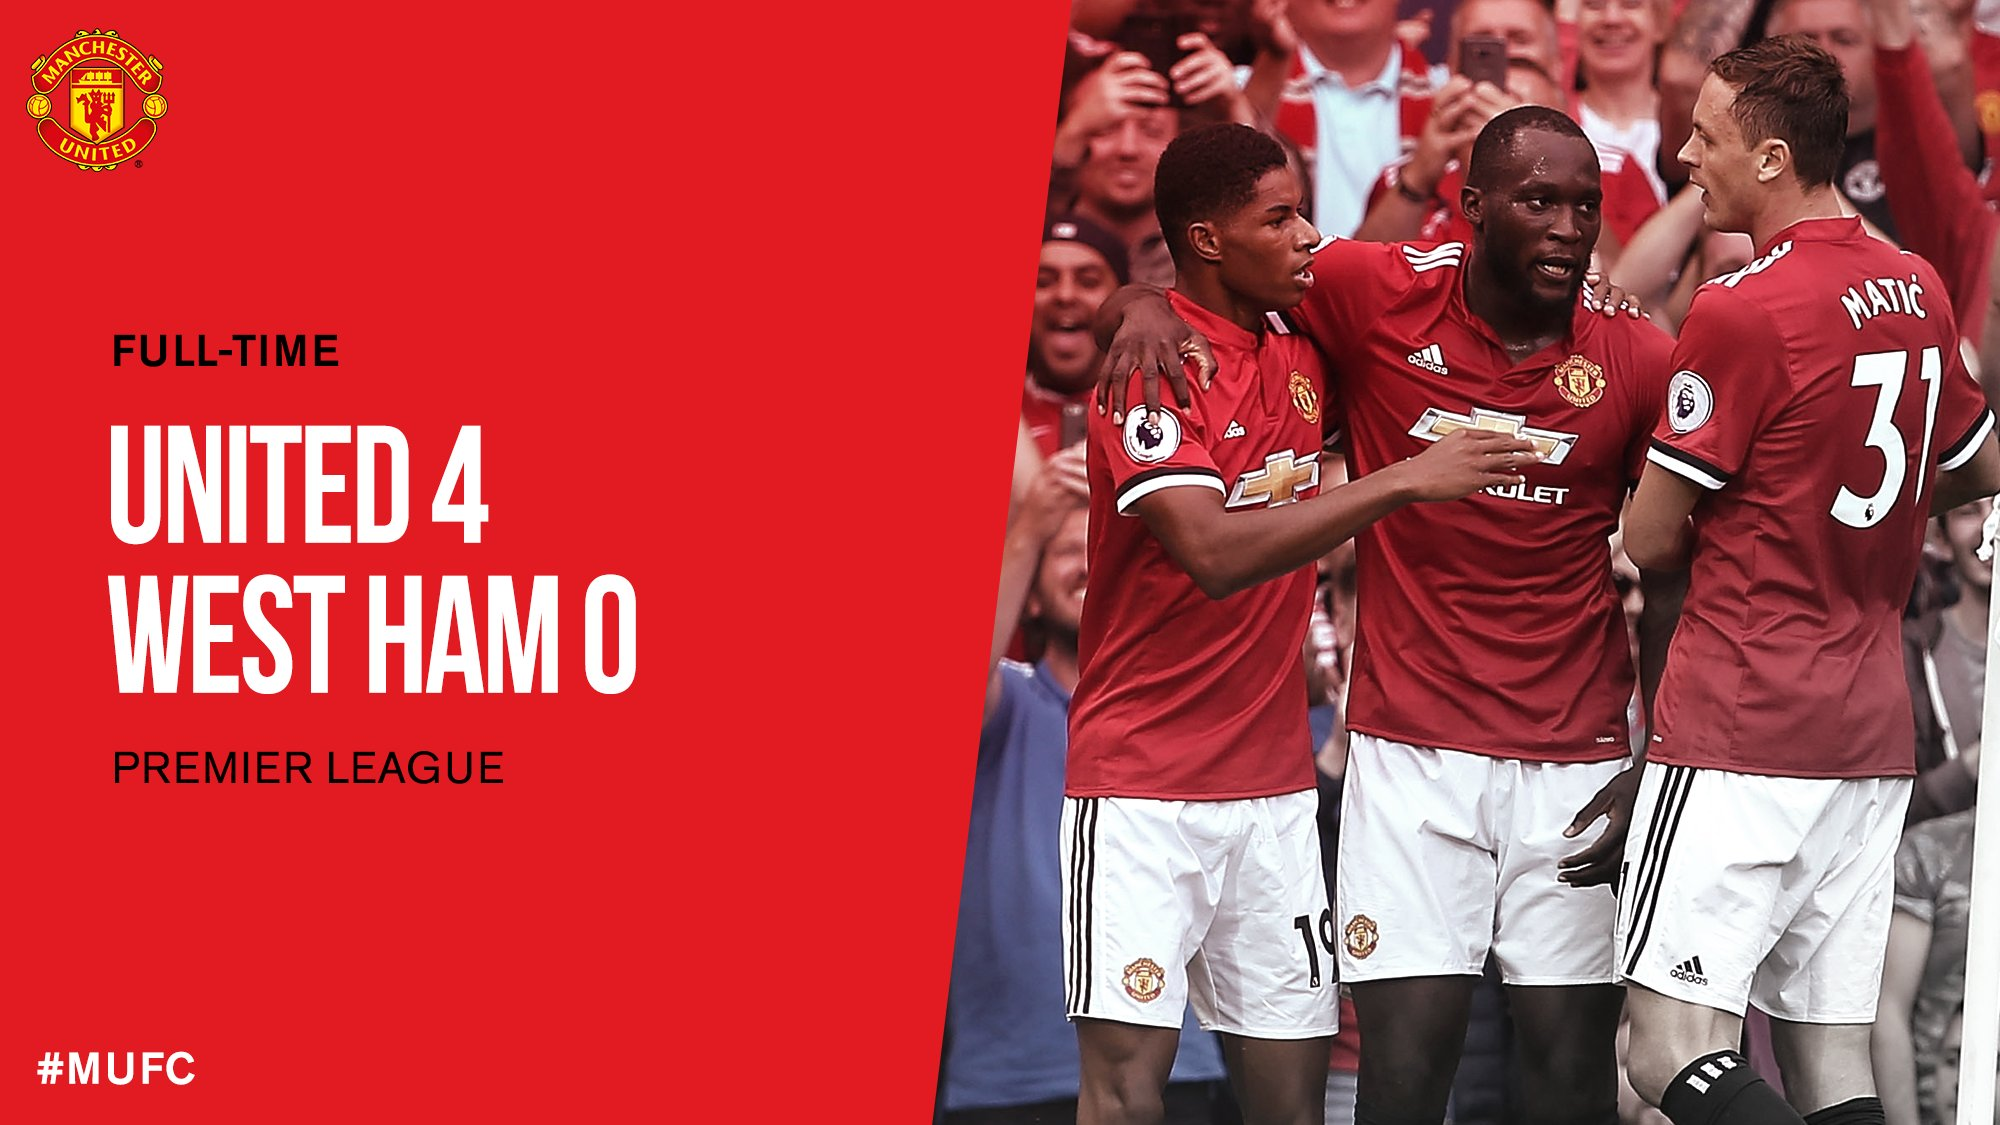 FT: #MUFC 4 West Ham 0. The perfect start to our new @PremierLeague season! #MUNWHU https://t.co/gg83AQqJ4E